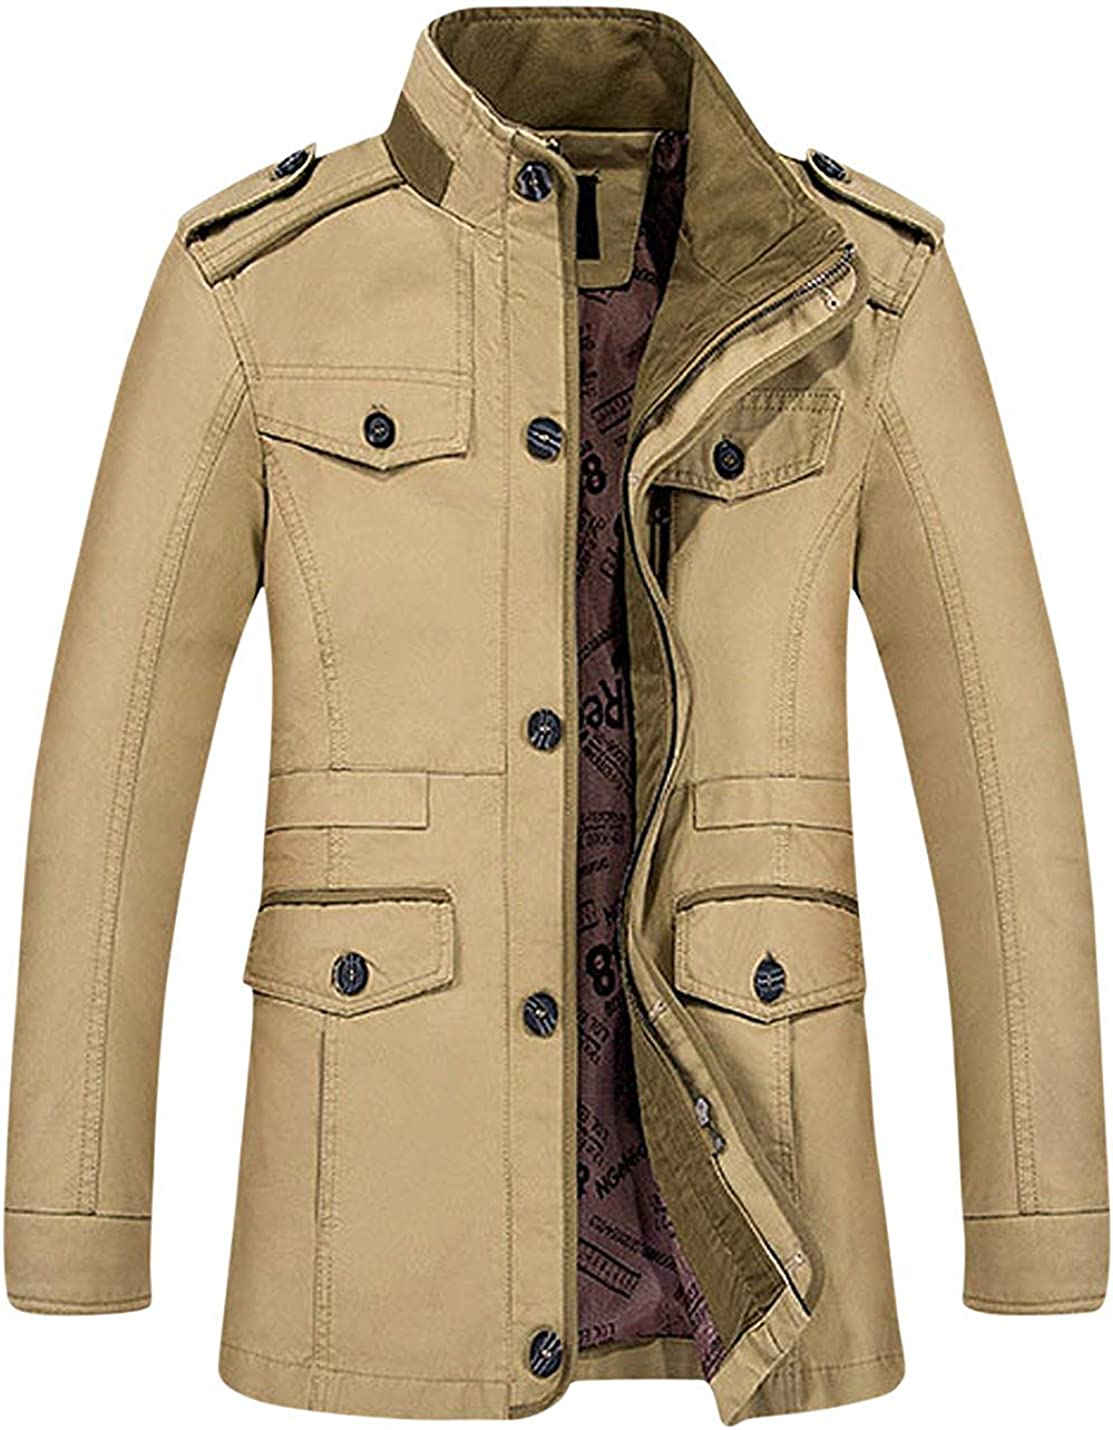 LANDOO Mens Slim Fit Stand Collar Outerwear Cotton Jacket Coats